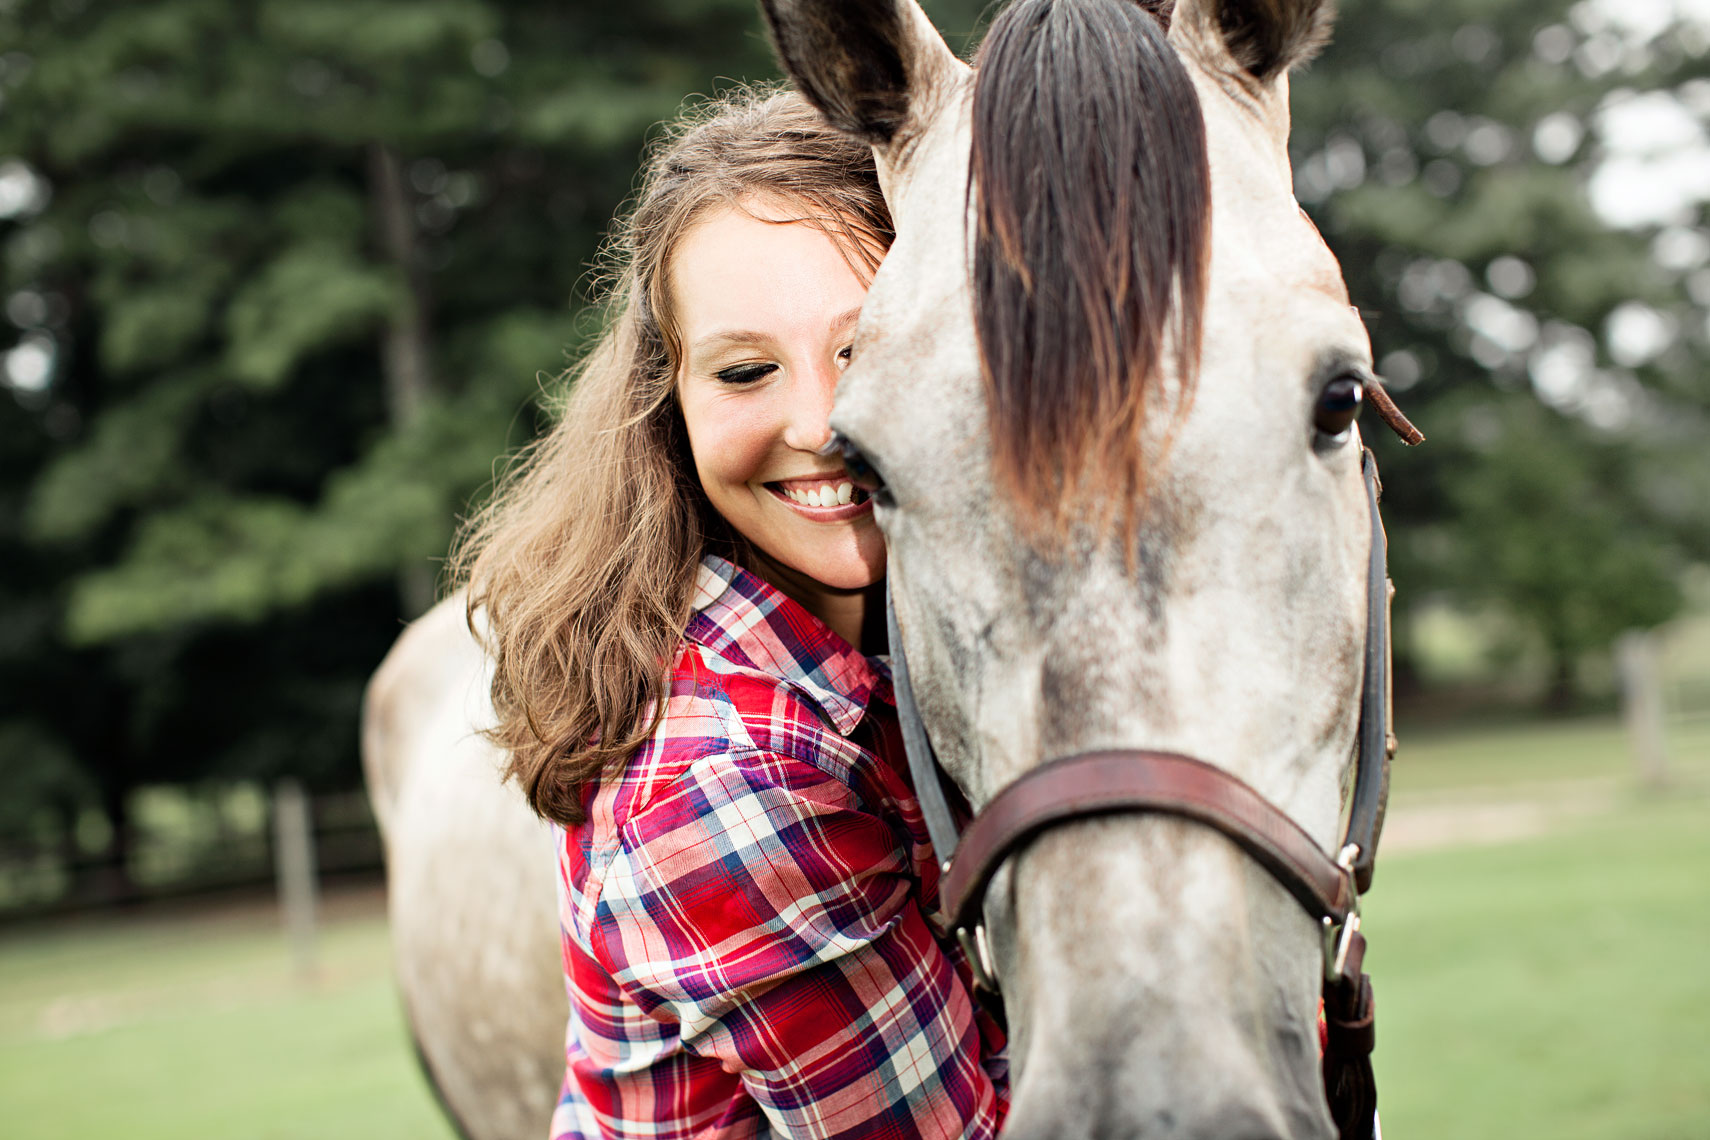 Young woman hugs neck of horse. By Atlanta photographer Nick Burchell